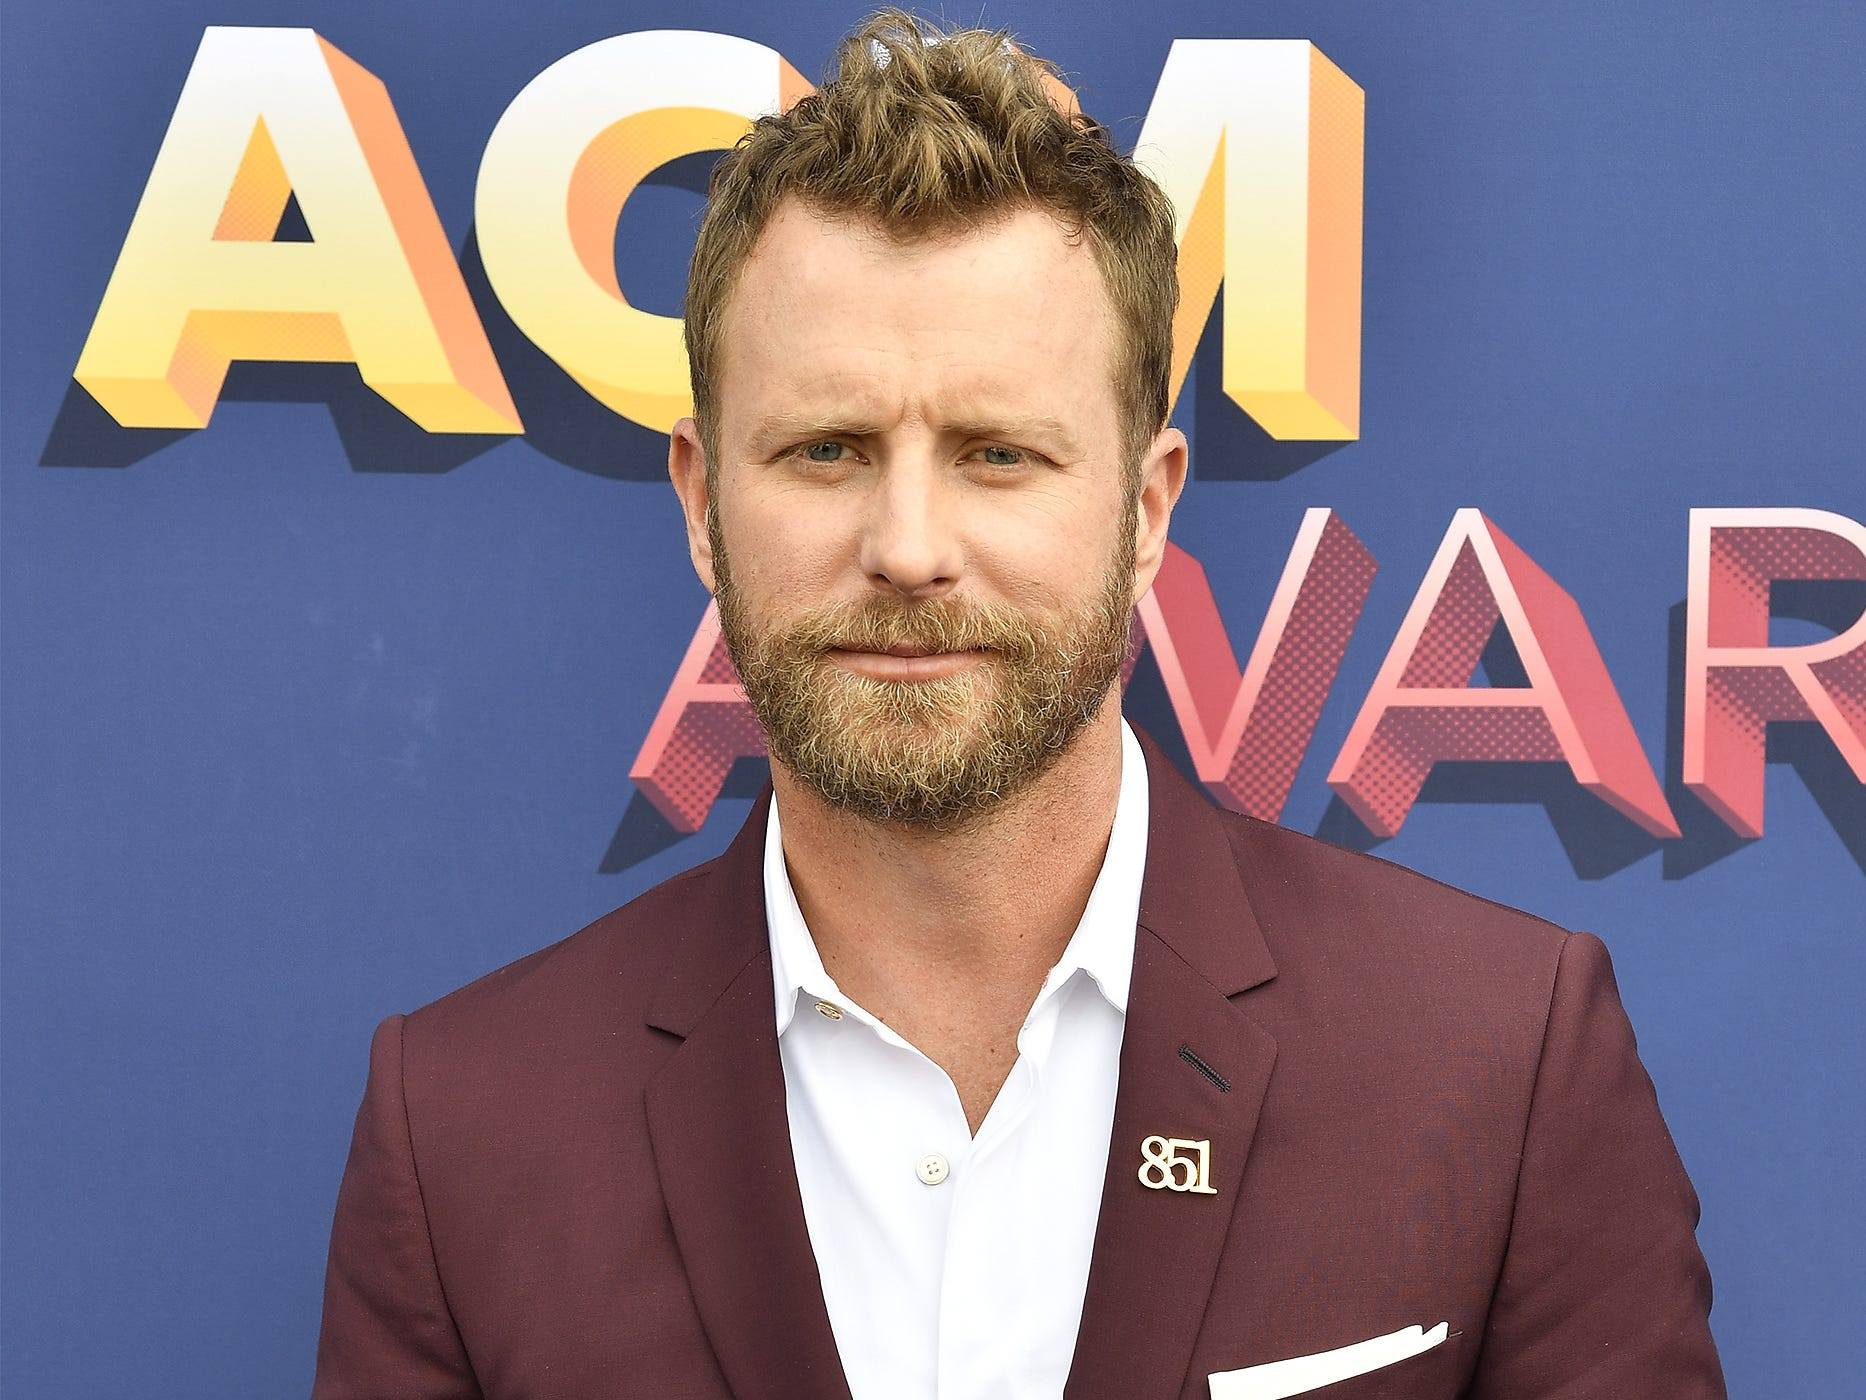 Dierks Bentley attends the 53rd Academy of Country Music Awards at the MGM Grand Garden Arena on April 15, 2018, in Las Vegas.